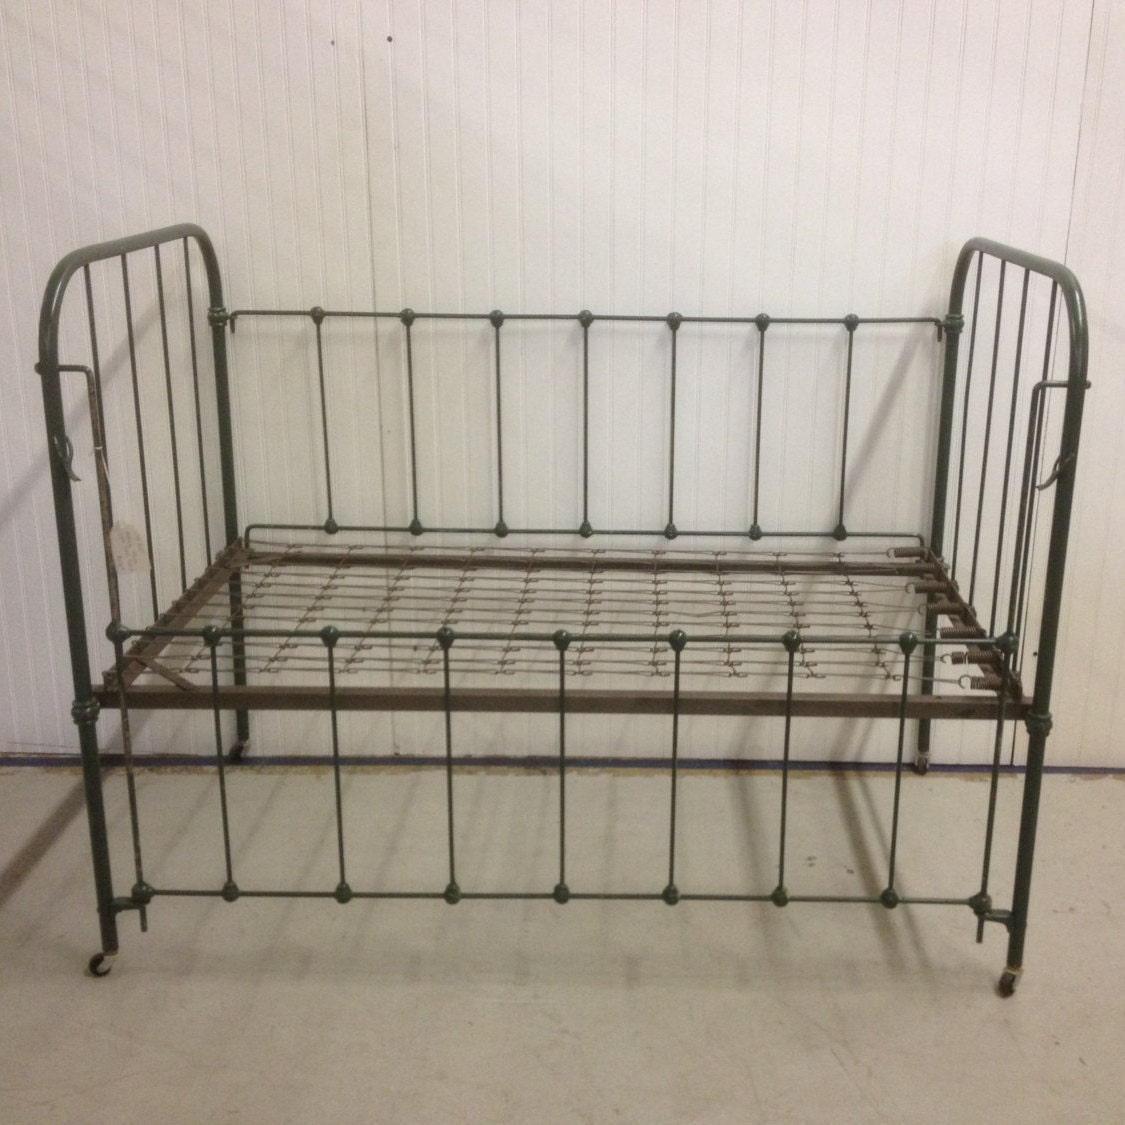 vintage iron baby crib with springs photo by